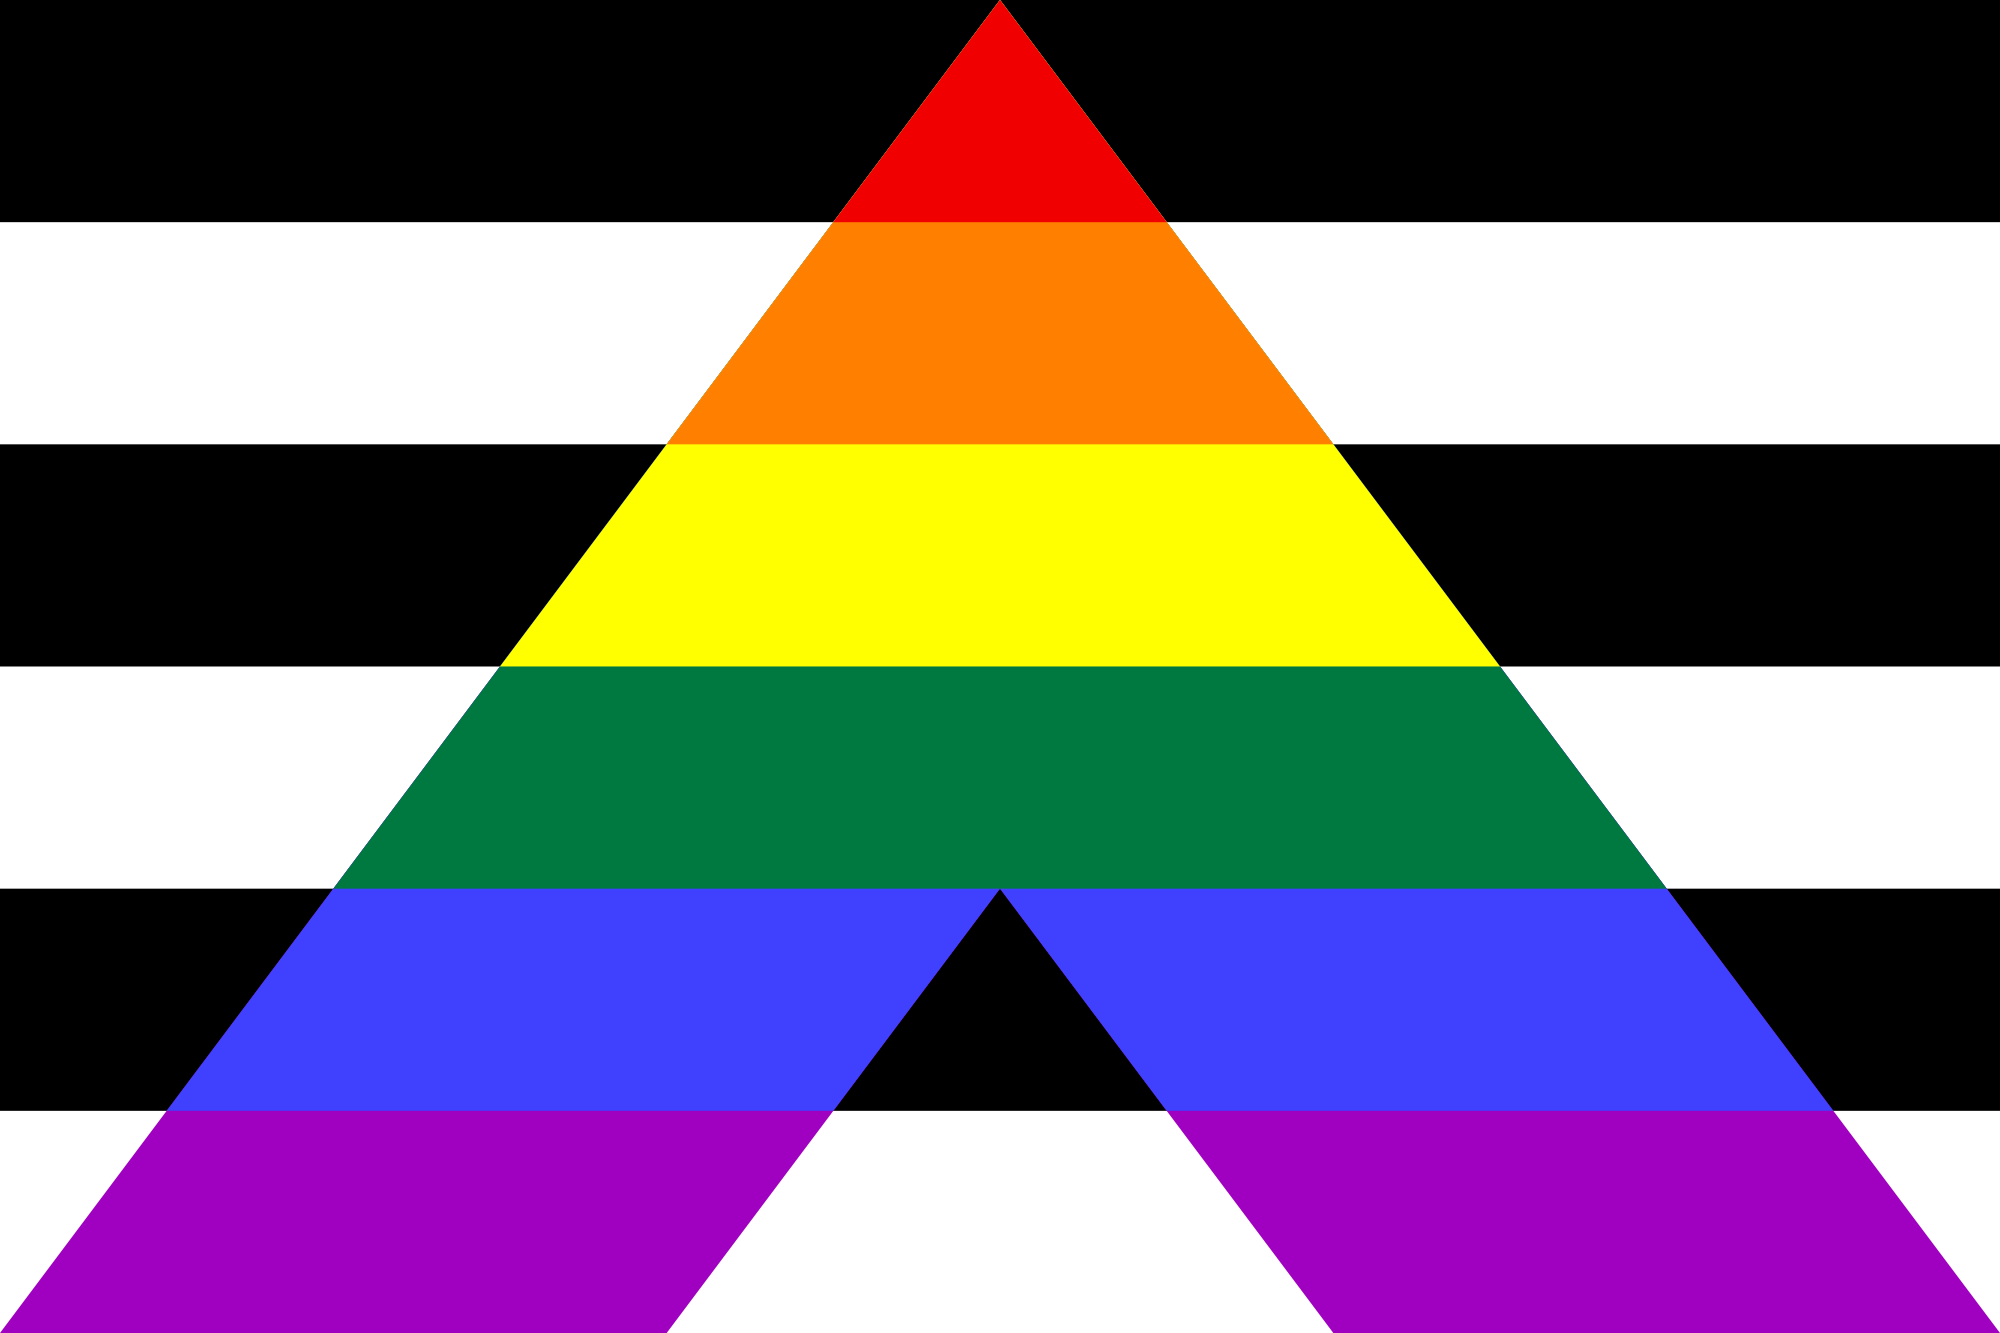 The LGTBQ Community is just one of many groups that need allies.